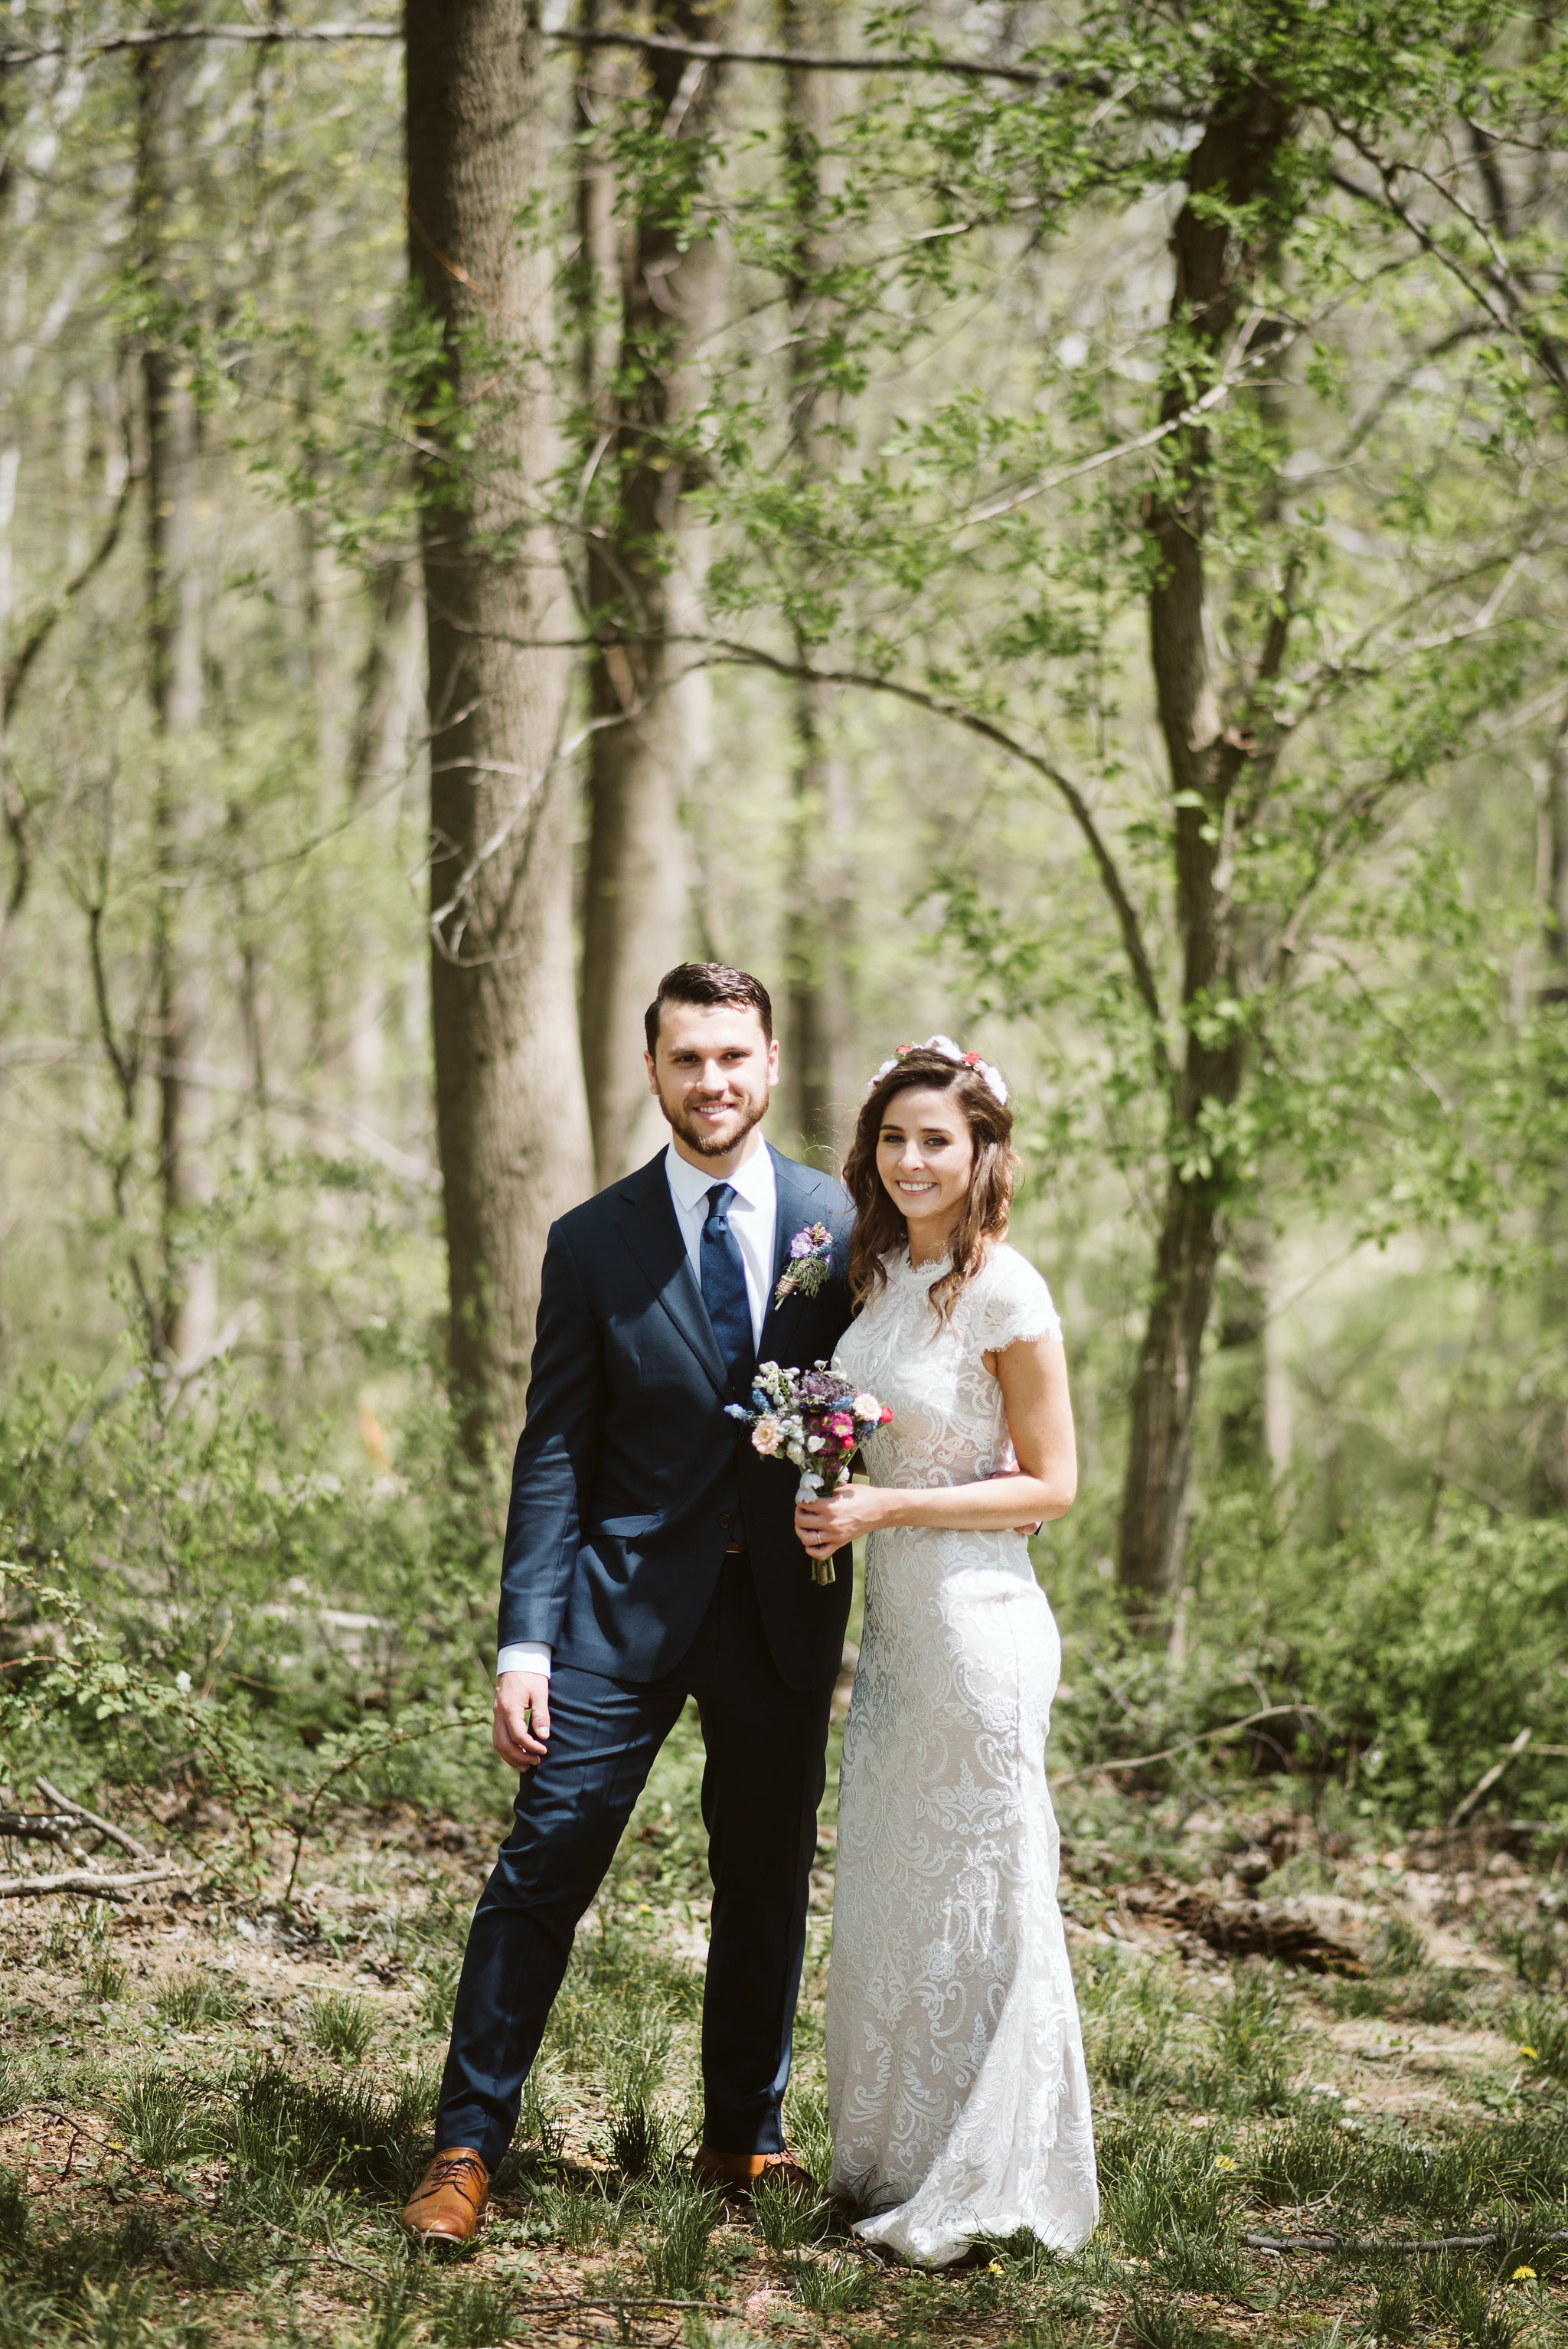 Spring Outdoor Wedding, Park, Baltimore Wedding Photographer, DIY, Classic, Upcycled, Garden Party, Romantic, Portrait of Bride and Groom in the Forest, Wildflowers, BHLDN Wedding Dress